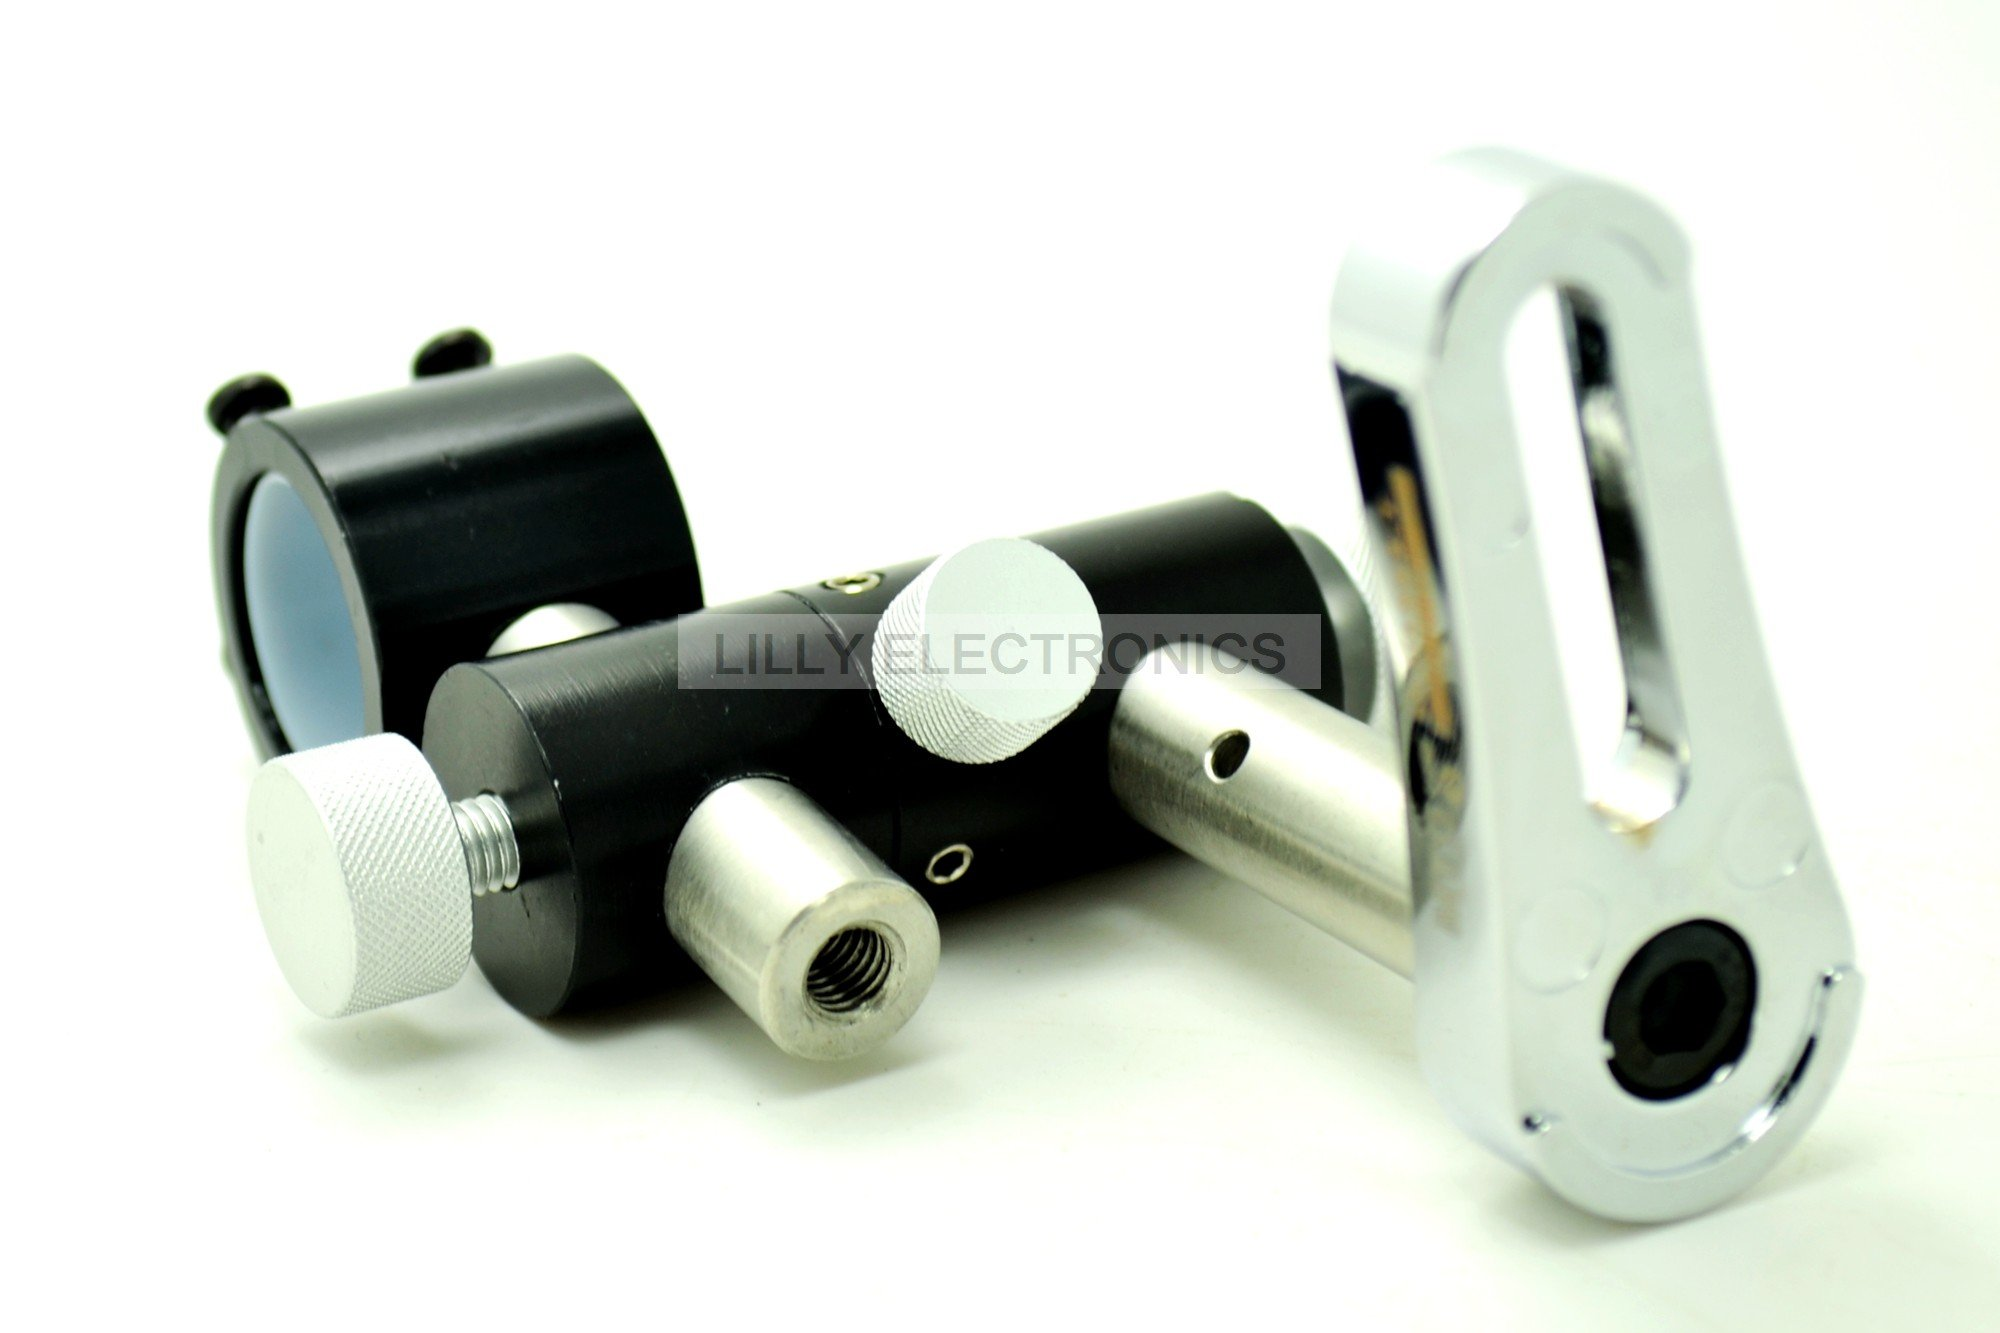 Three-axis Adjustable Holder/Clamp/Mount 21.5mm Diameter for Laser Diode Module or Torch Cooling Heatsink by Blaser